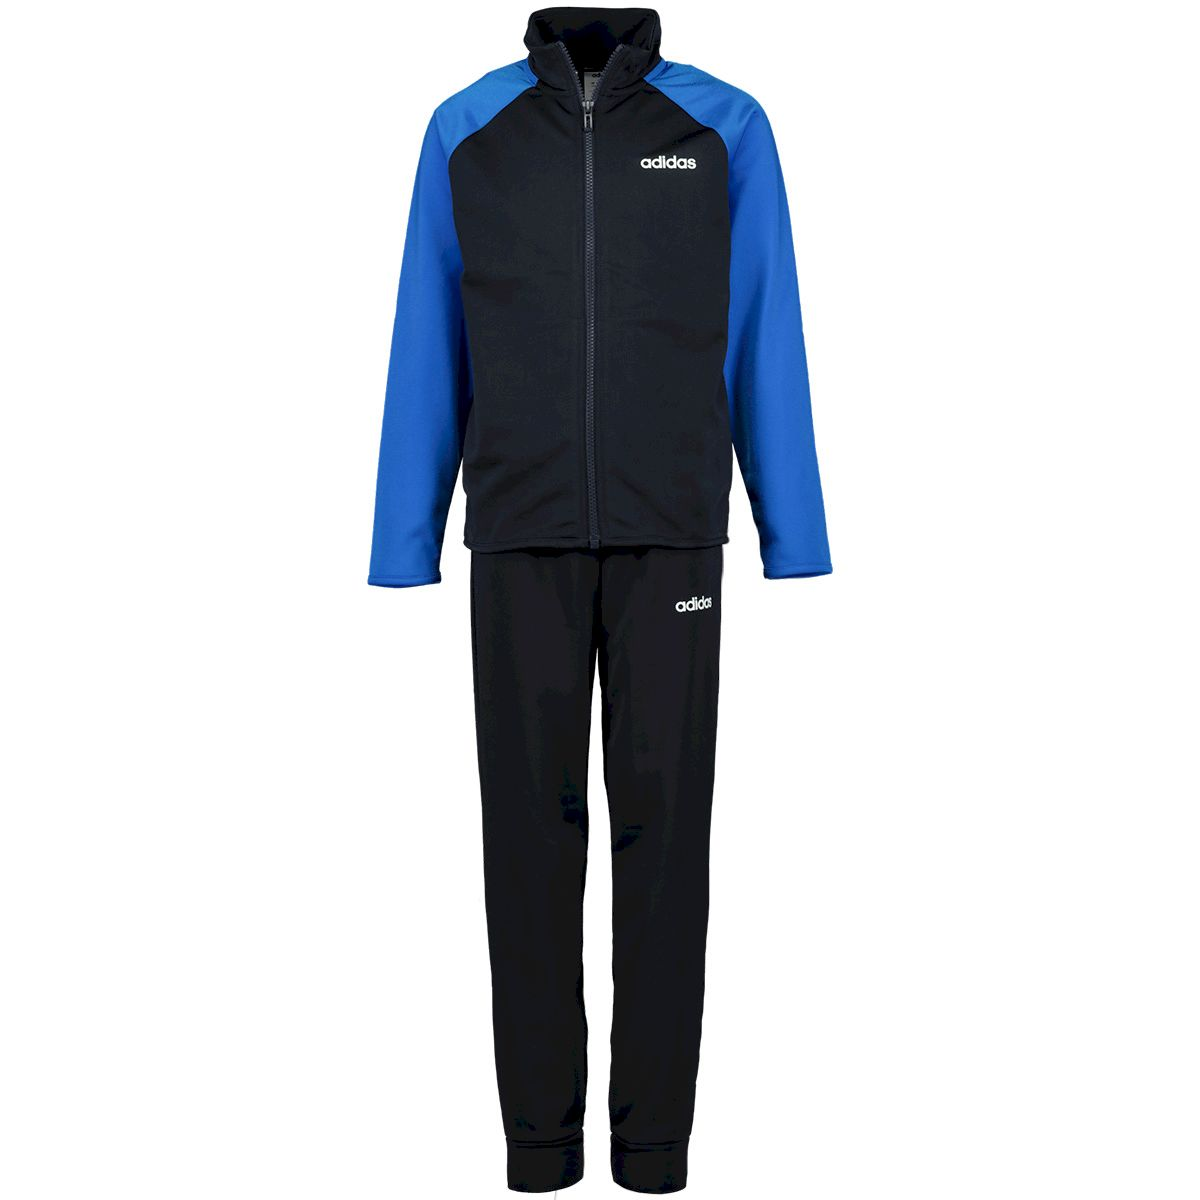 trainingspak adidas blauw